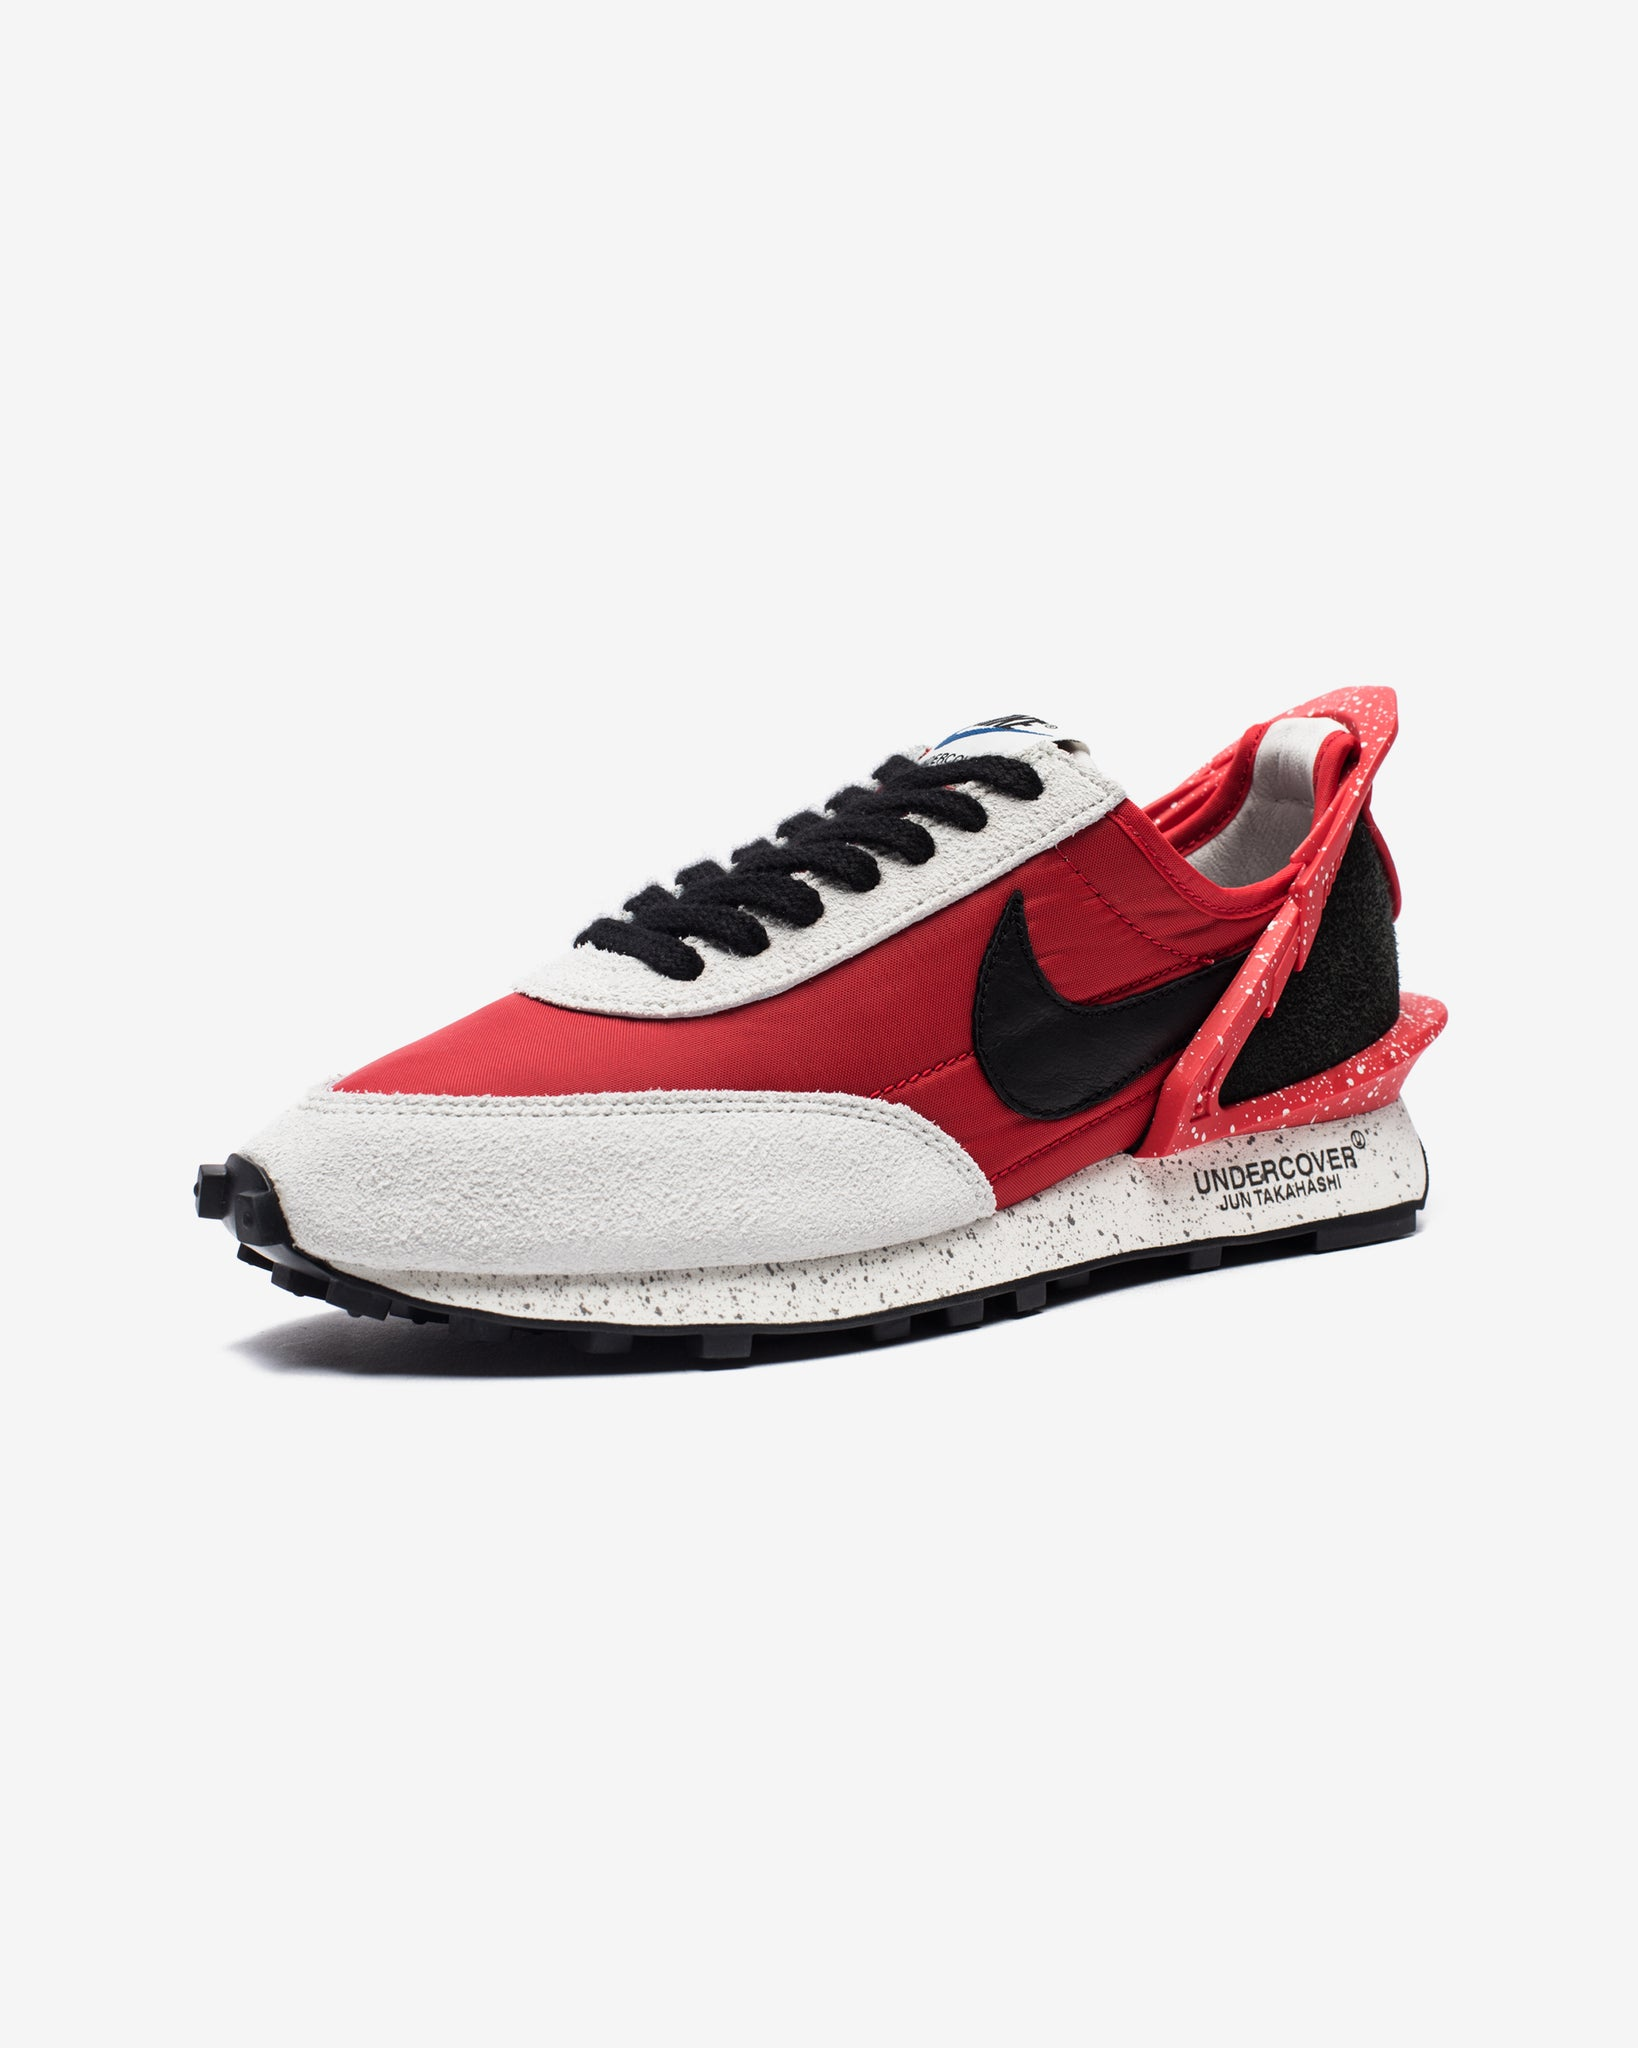 NIKE X UNDERCOVER DAYBREAK - UNIVERSITYRED/BLACK/SPRUCEAURA